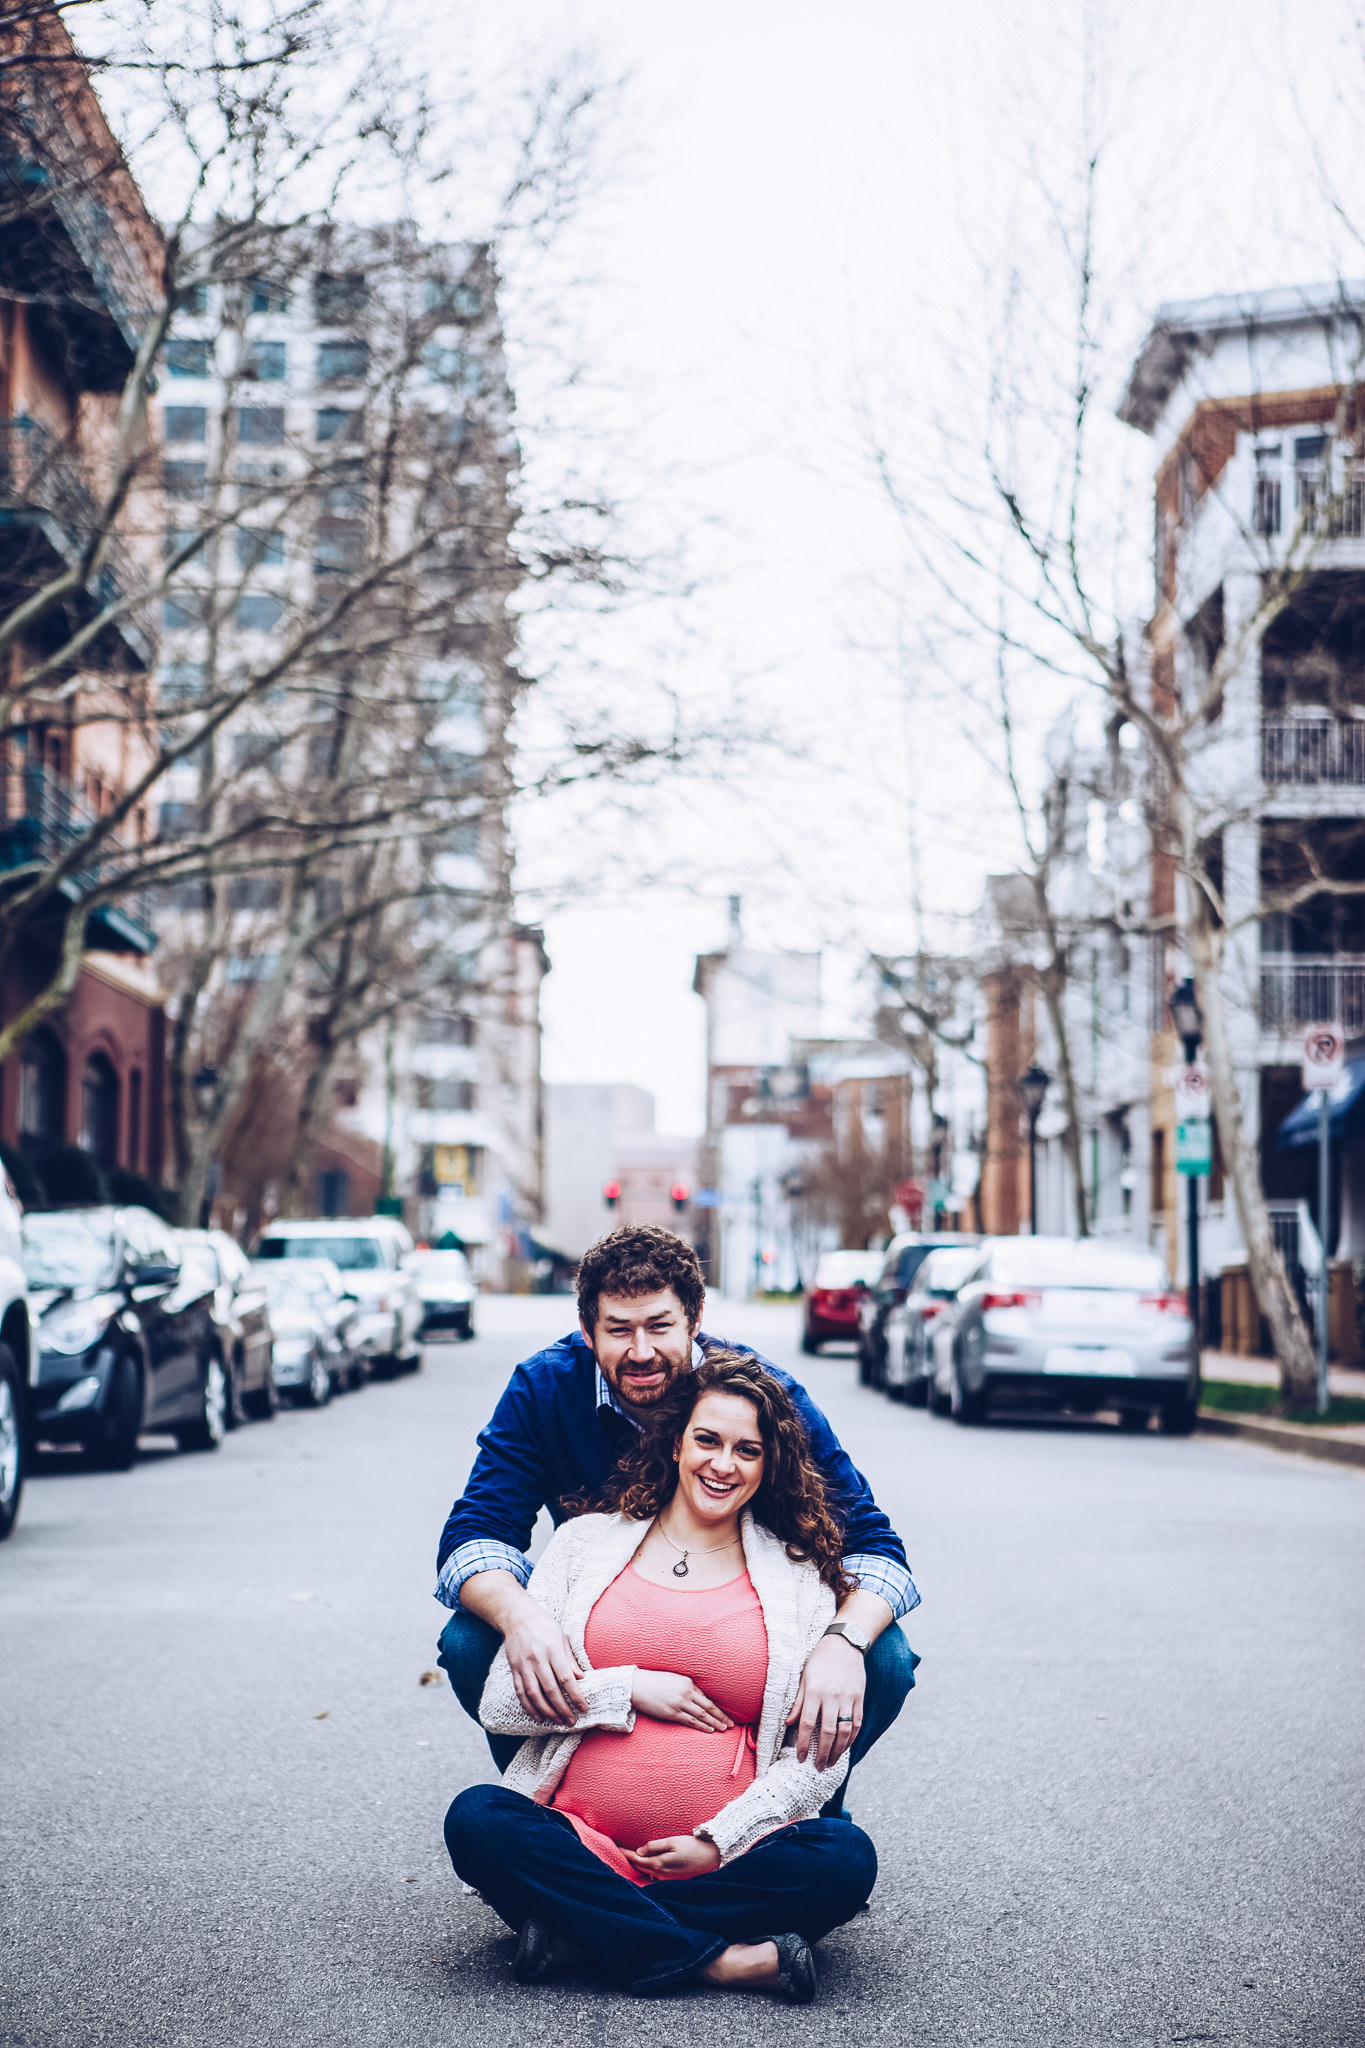 downtown-norfolk-virginia-maternity-portrait-photograph-springs.jpg